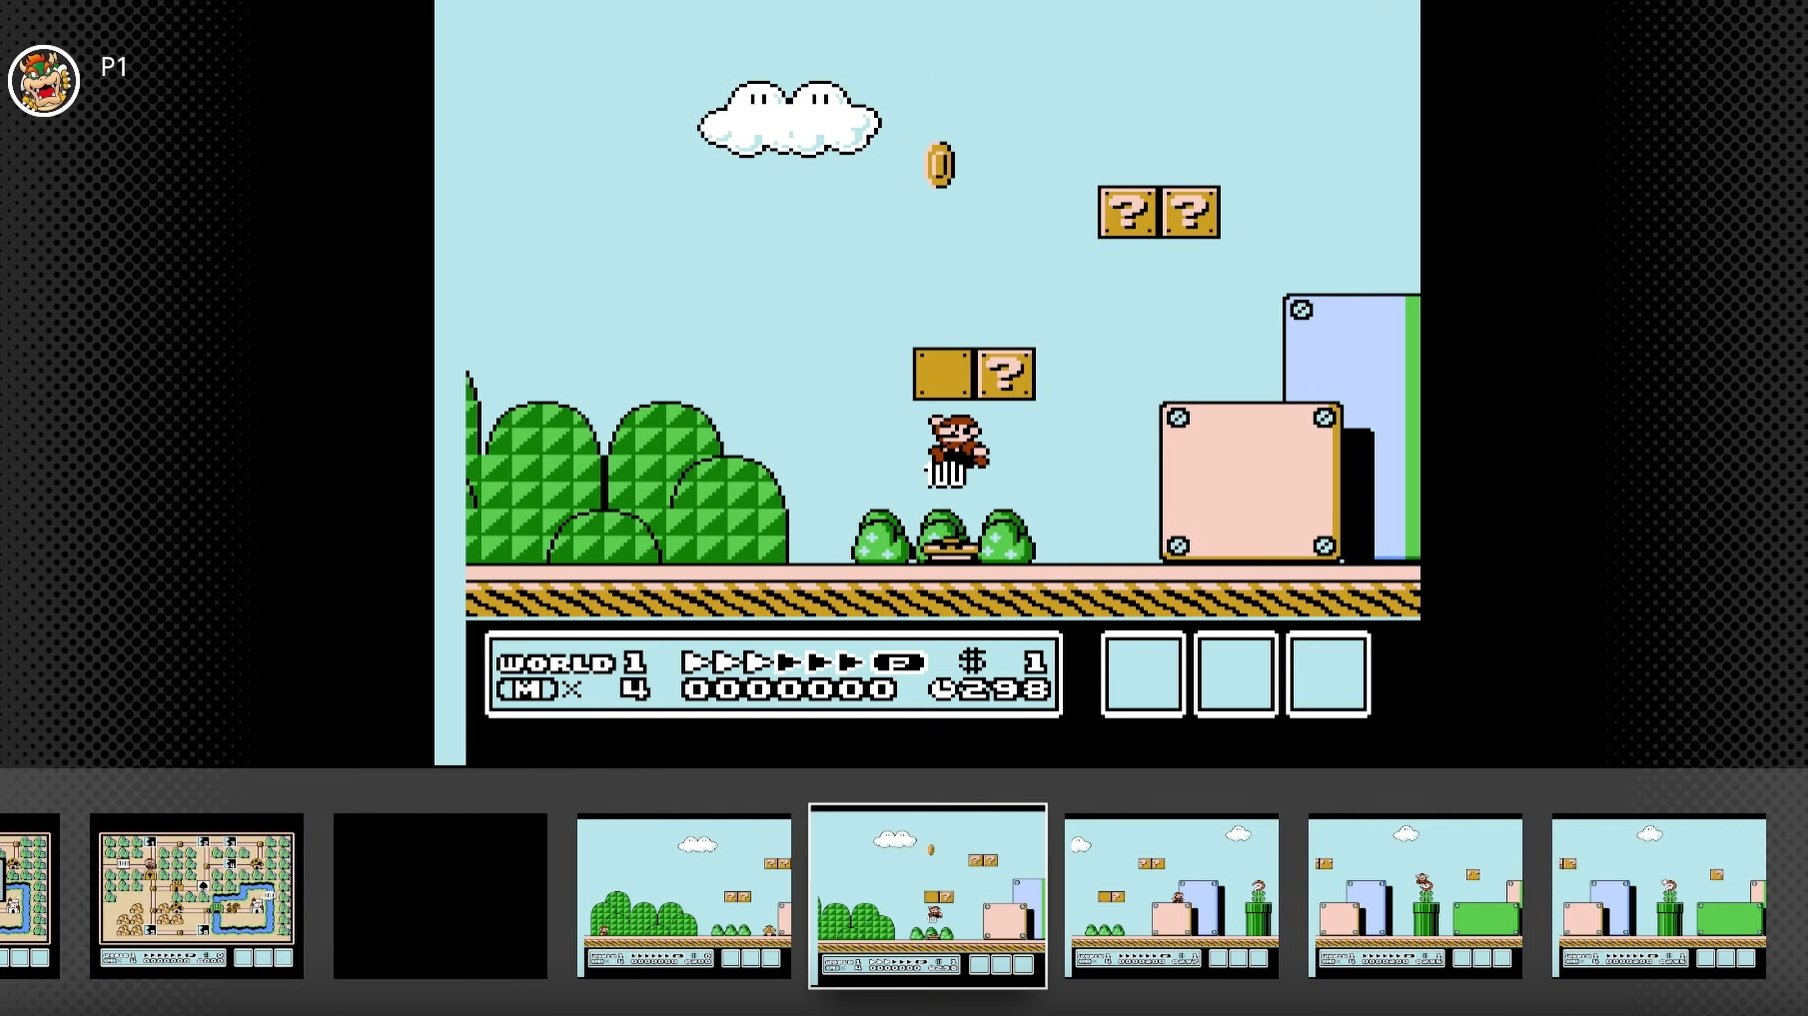 NES Online rewind update feature will create multiple rolling save states